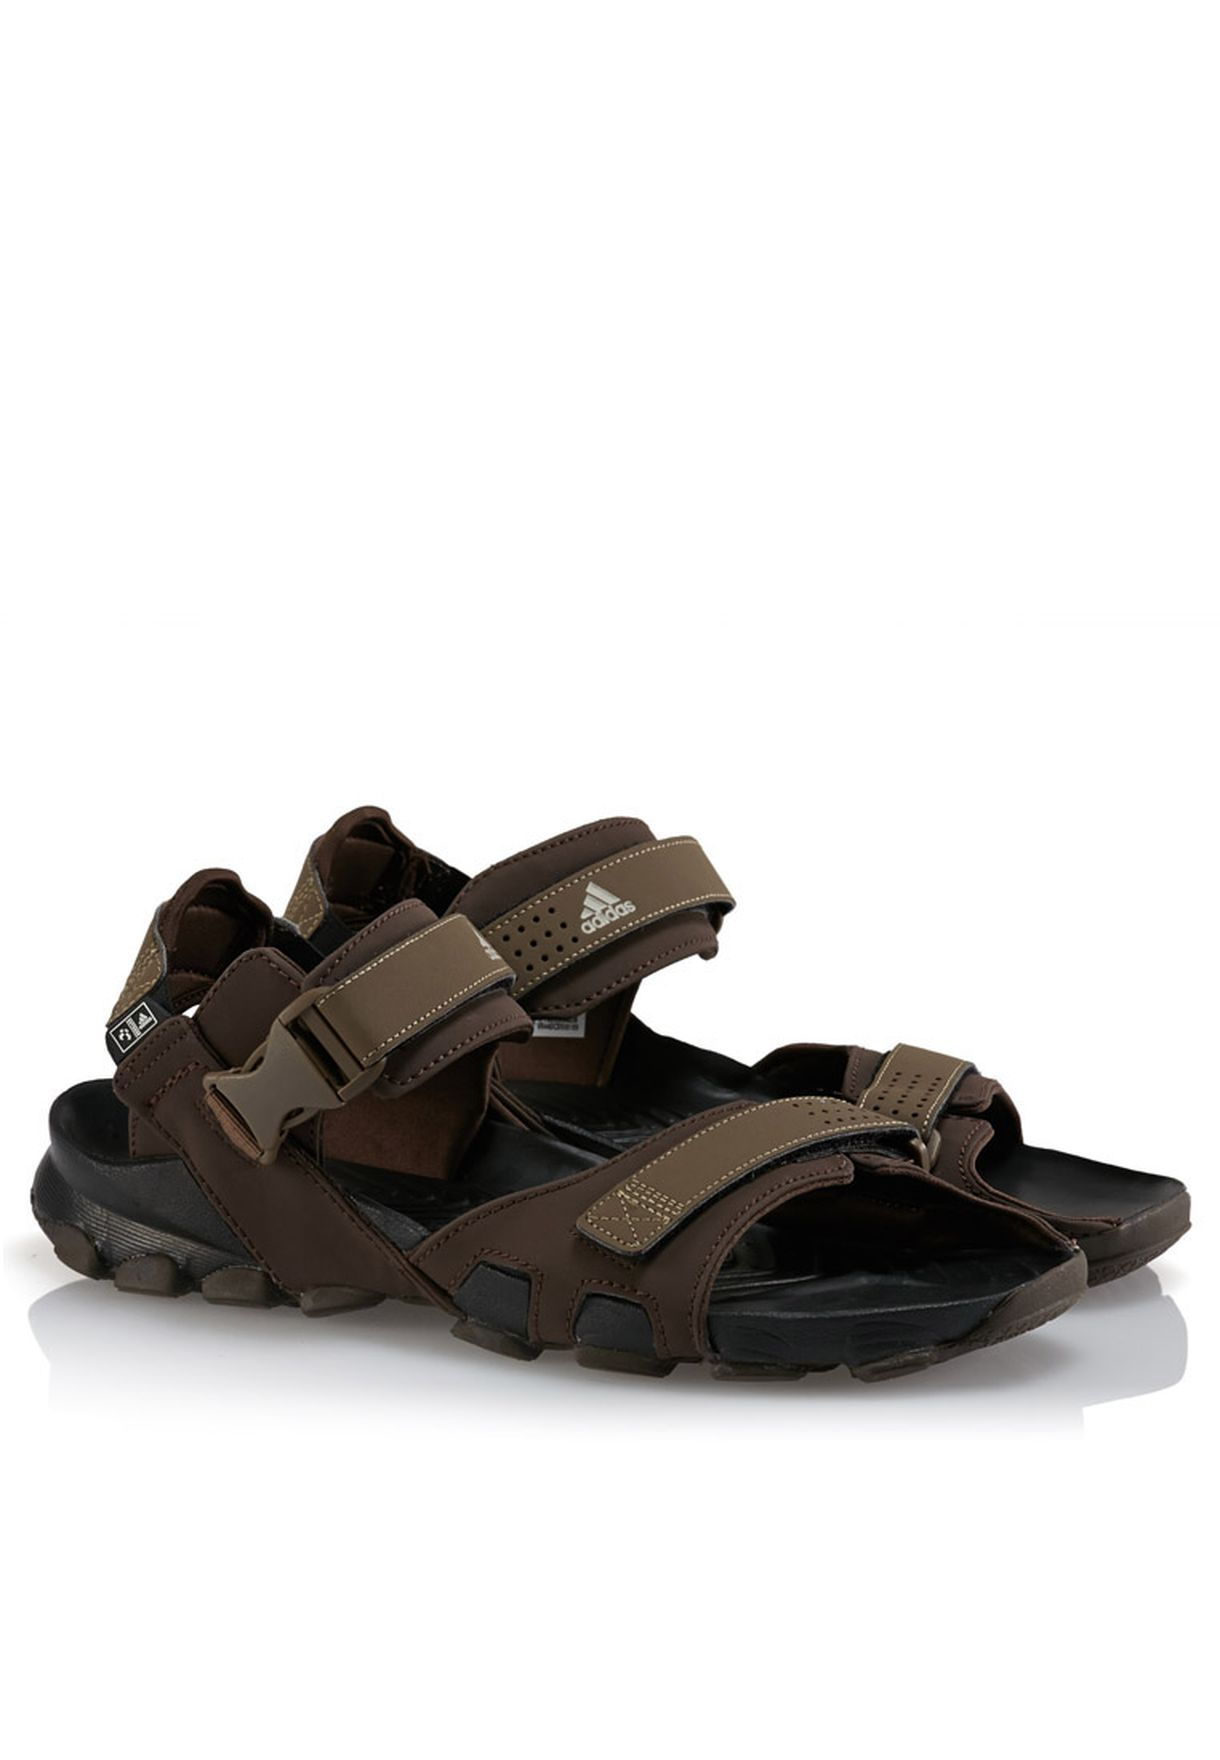 2bd4d9204e58 Shop adidas browns Cyprex Ultra Sandal D66456 for Men in Saudi ...